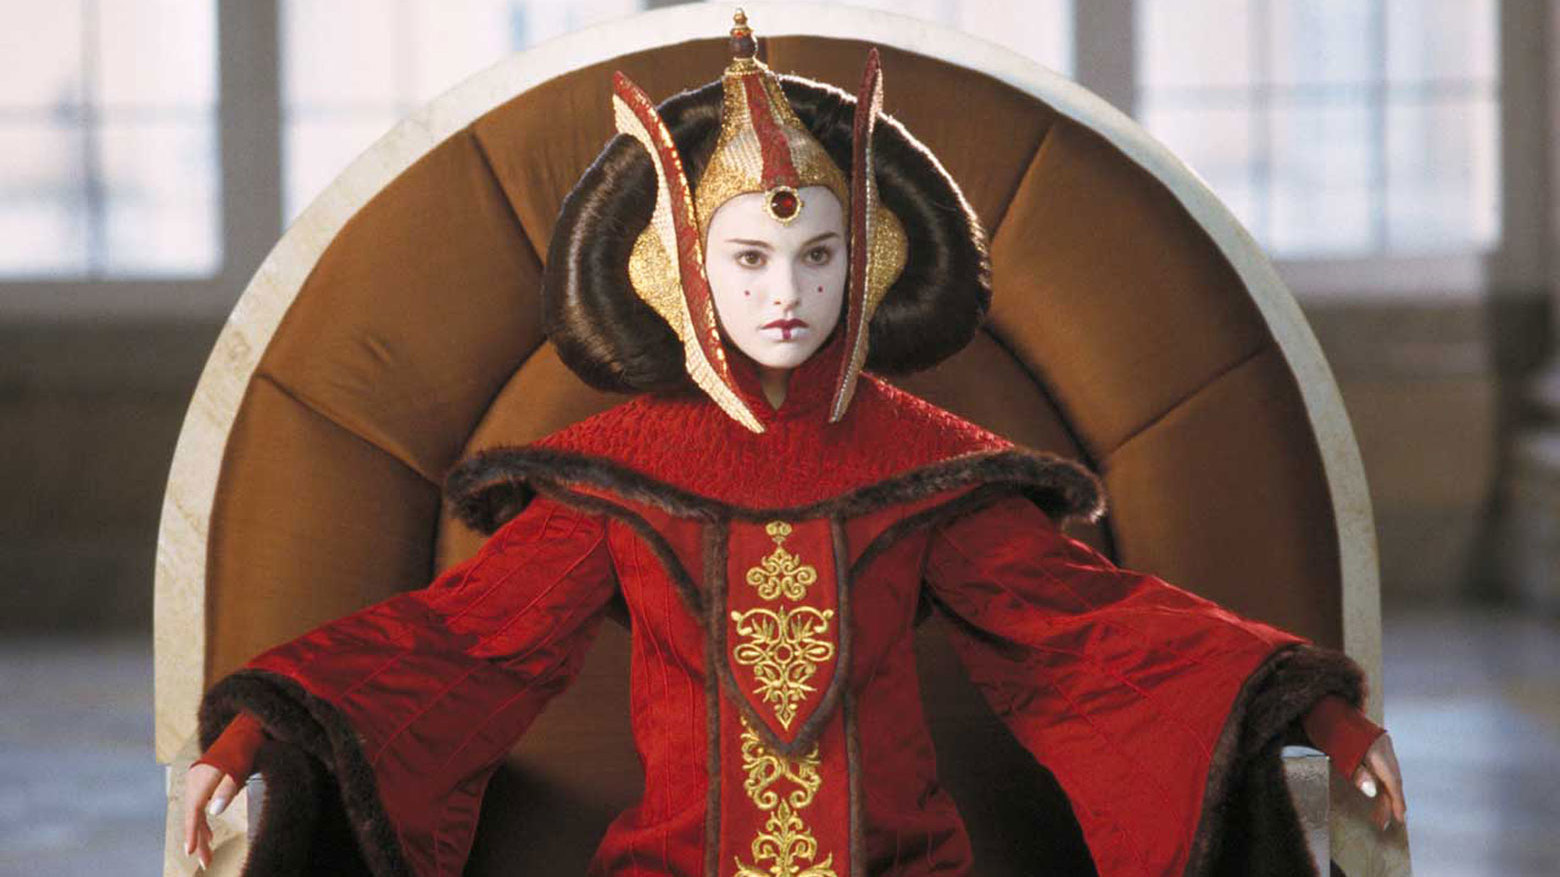 Padme Amidala, mother to Luke and Leia, is a strong female character who dies after giving birth to her children. But before that, she was a fighter for liberty and freedom -- a queen at 14 and a member of the Galactic Senate. Pretty tough, huh?